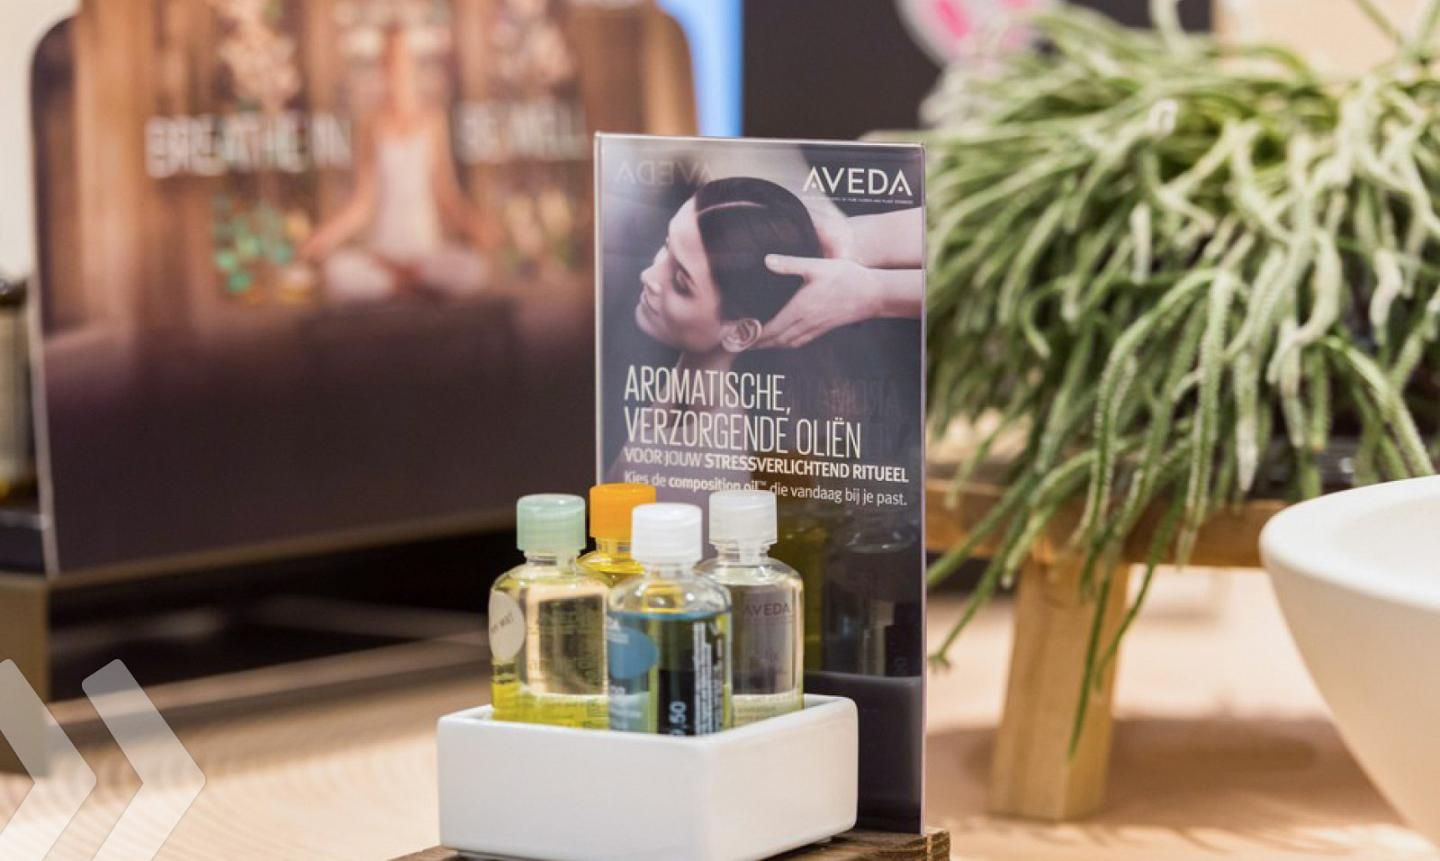 Aveda Shop in Shop 12